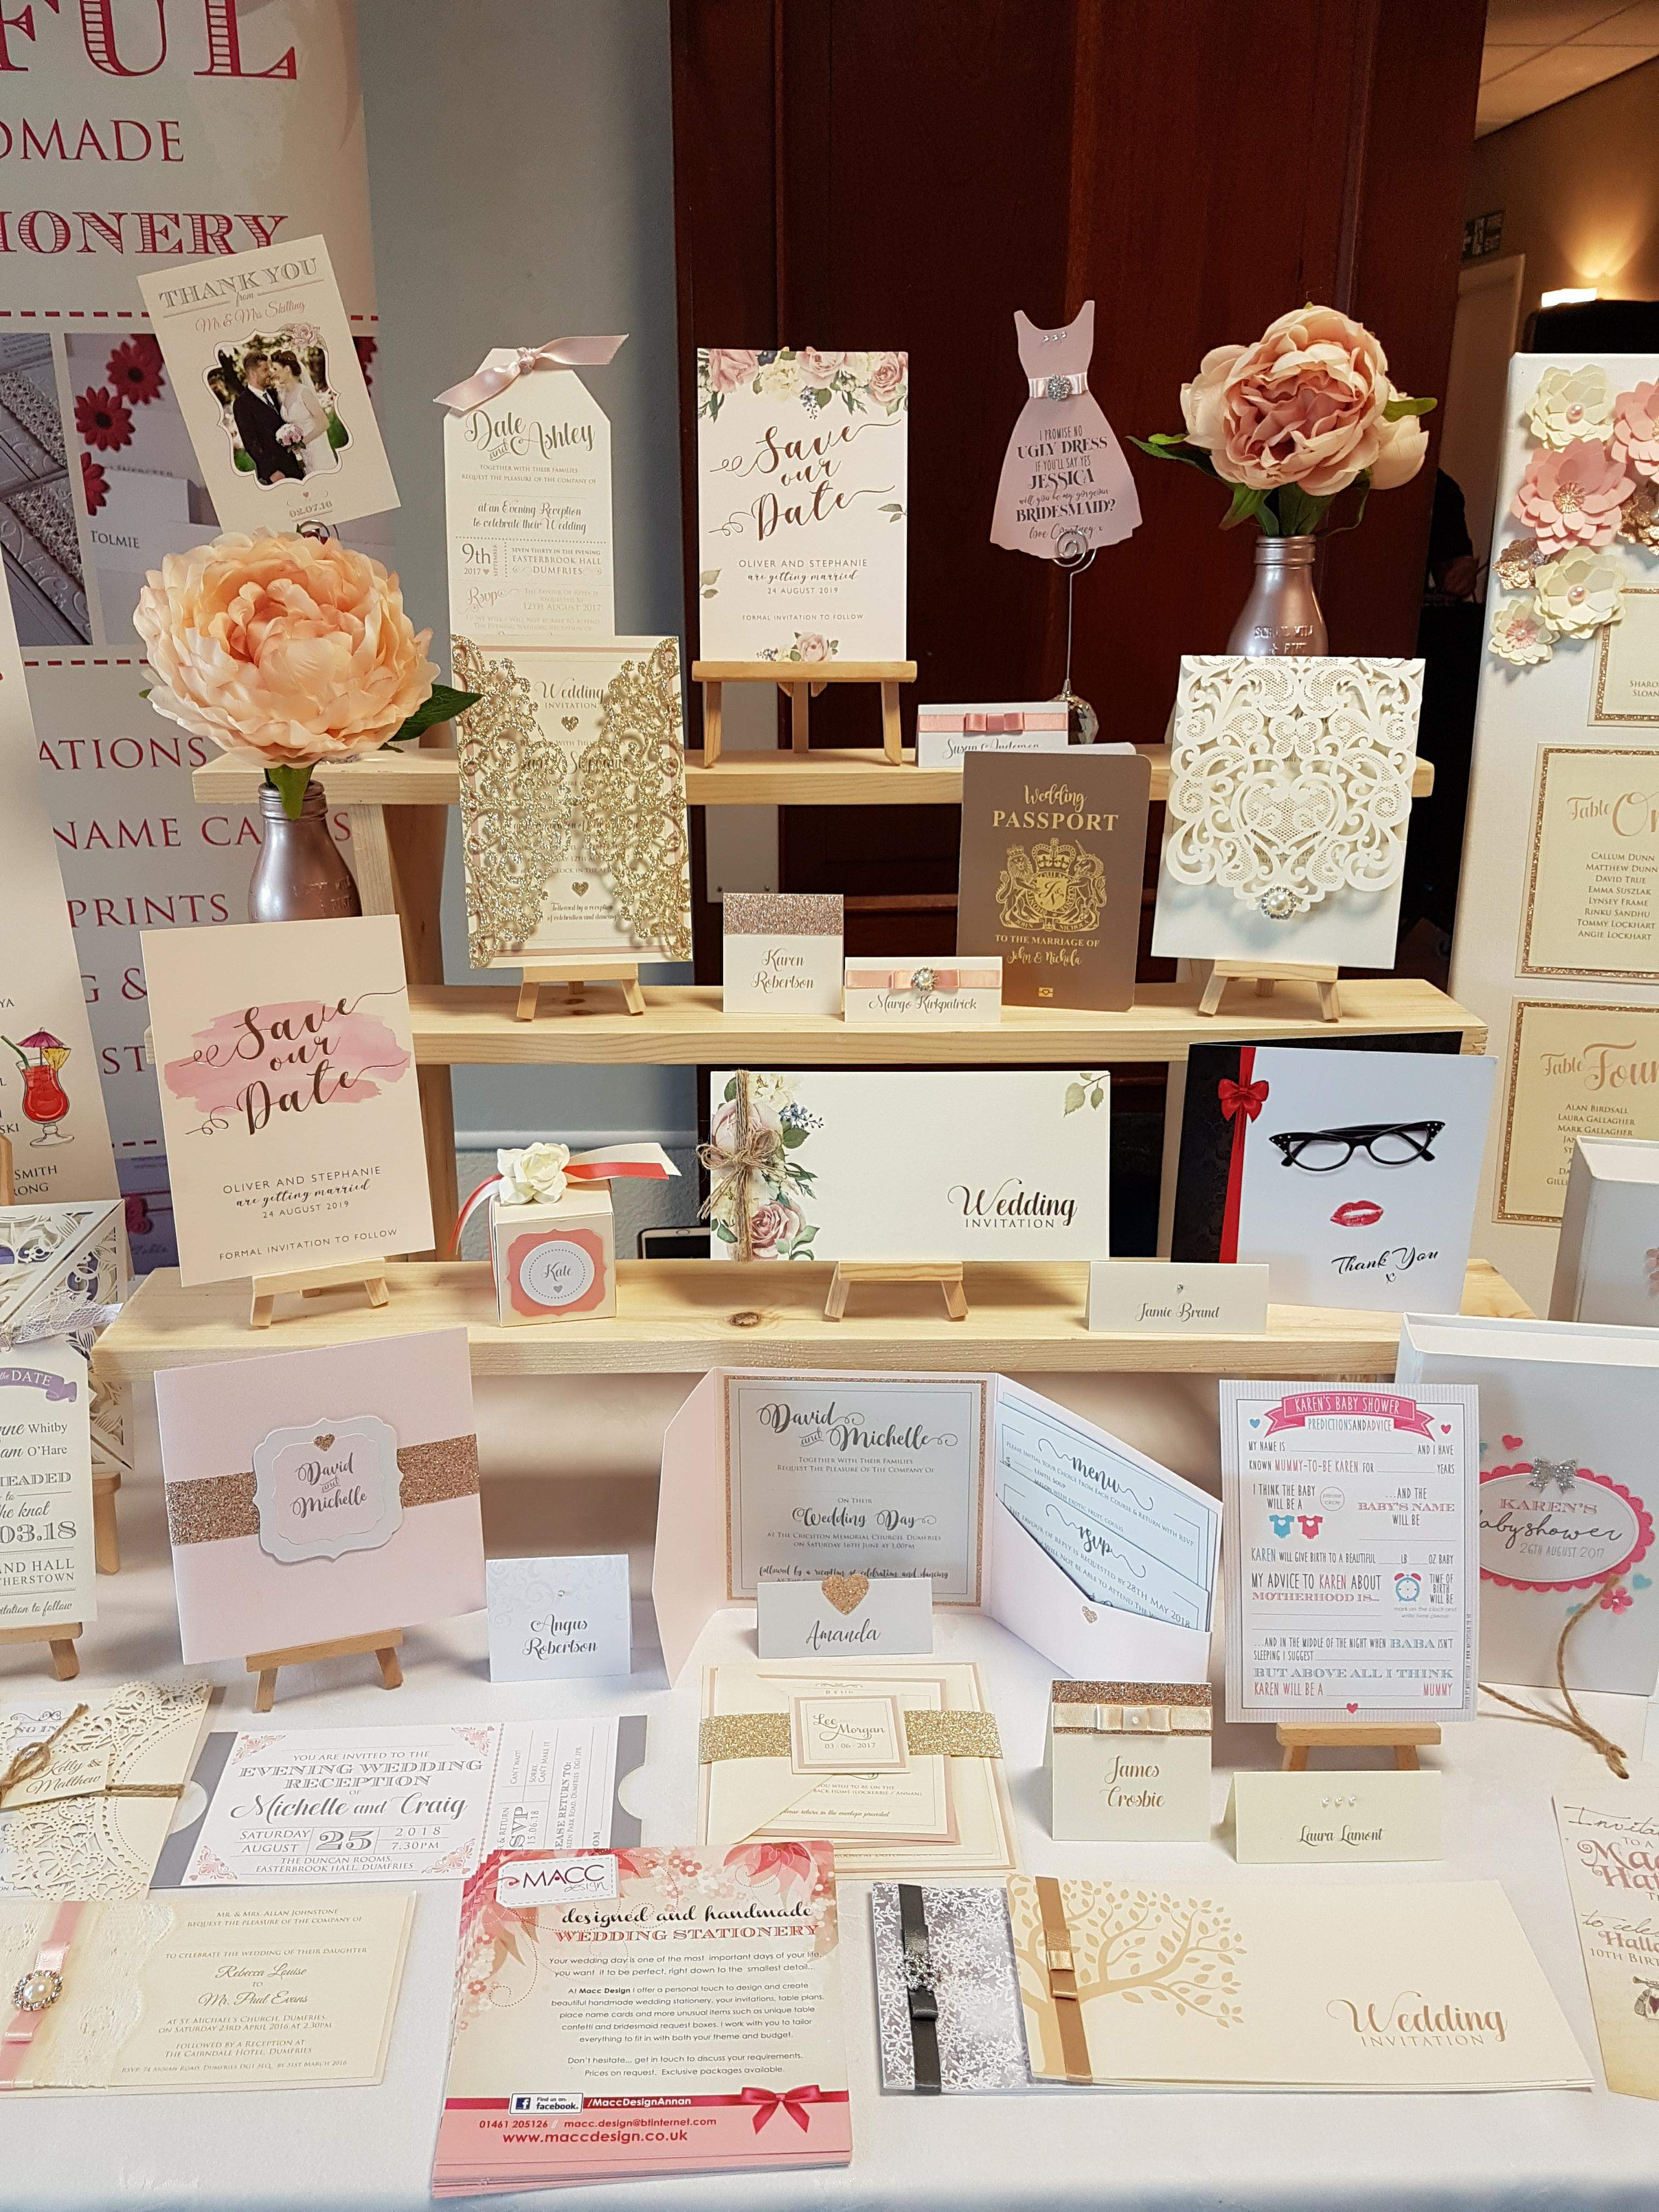 Handmade stationery for your wedding at the Powfoot Hotel Annan